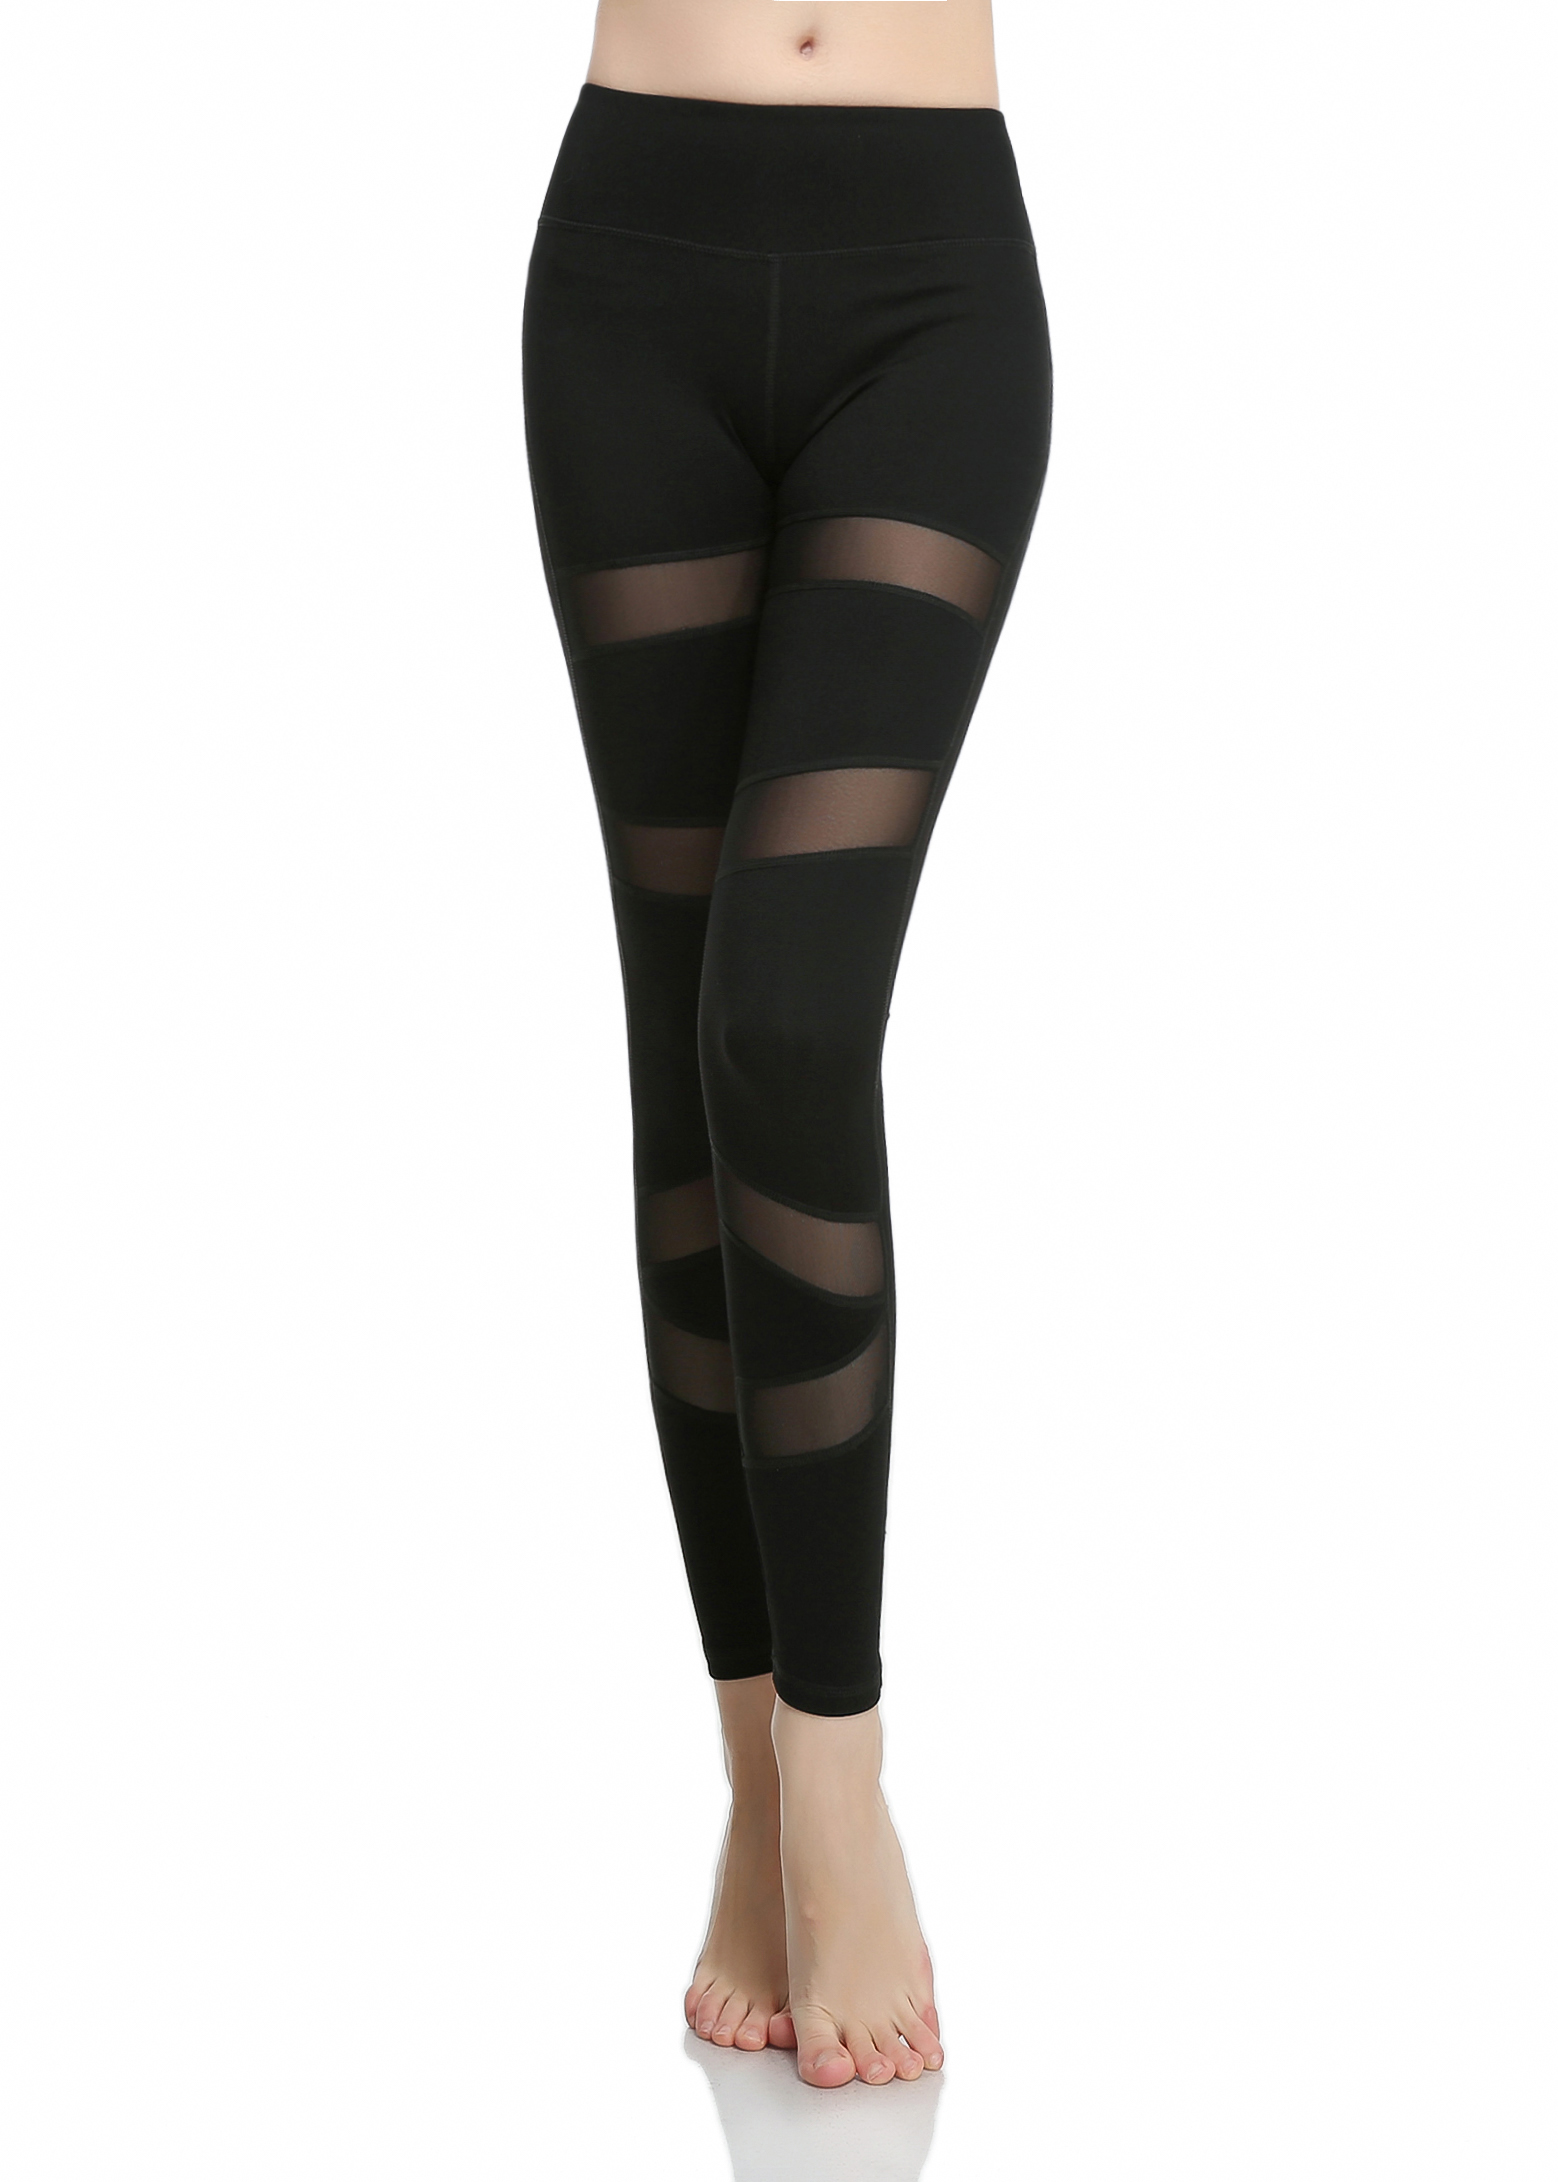 Girls or Junior Women's Black with Spliced mesh inserts Compression Tights Active Stretch Fitness Yoga pants Running and Jogging Leggings